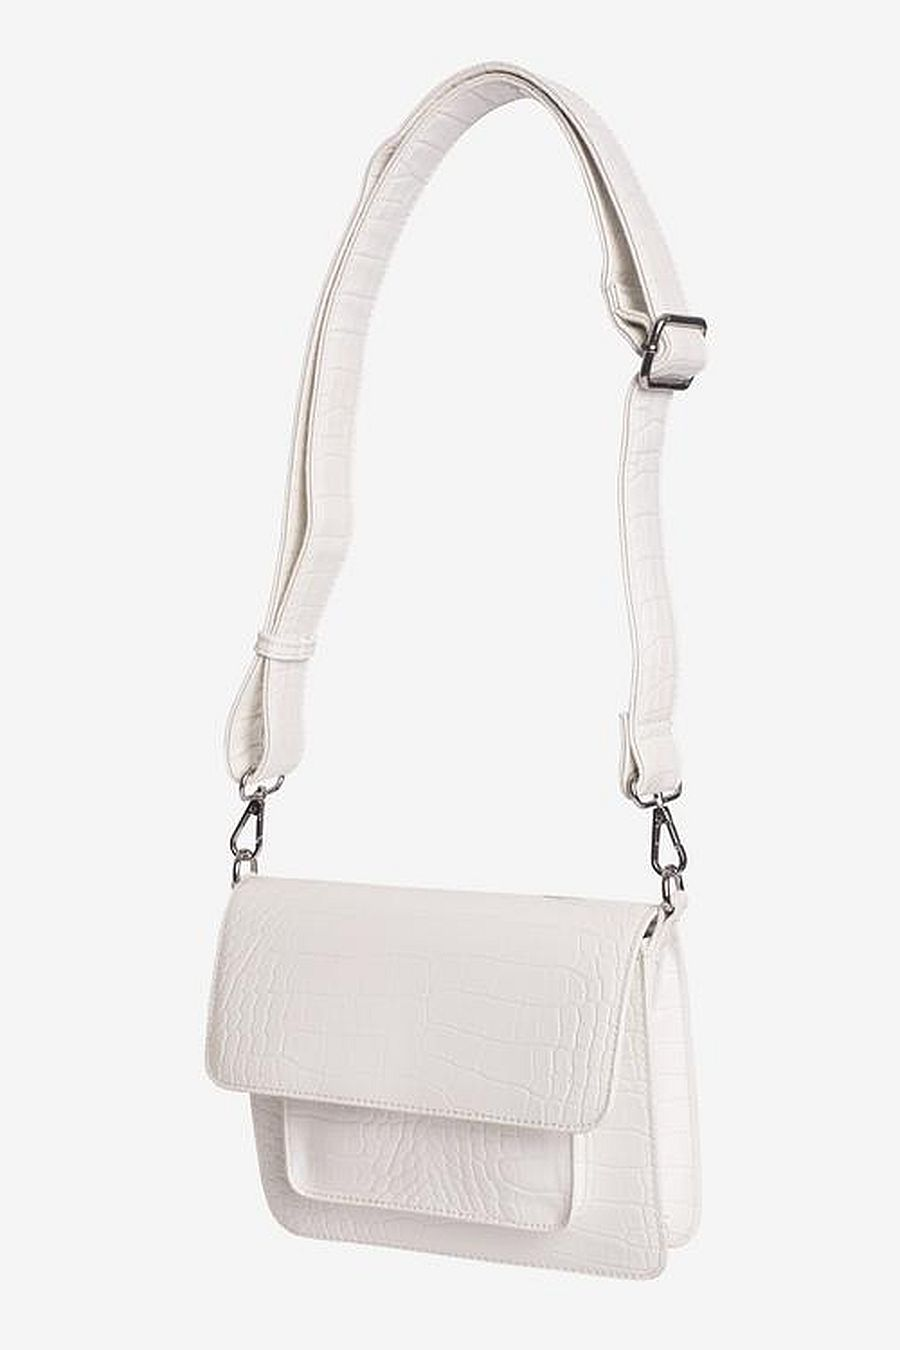 HVISK Cayman Pocket - White